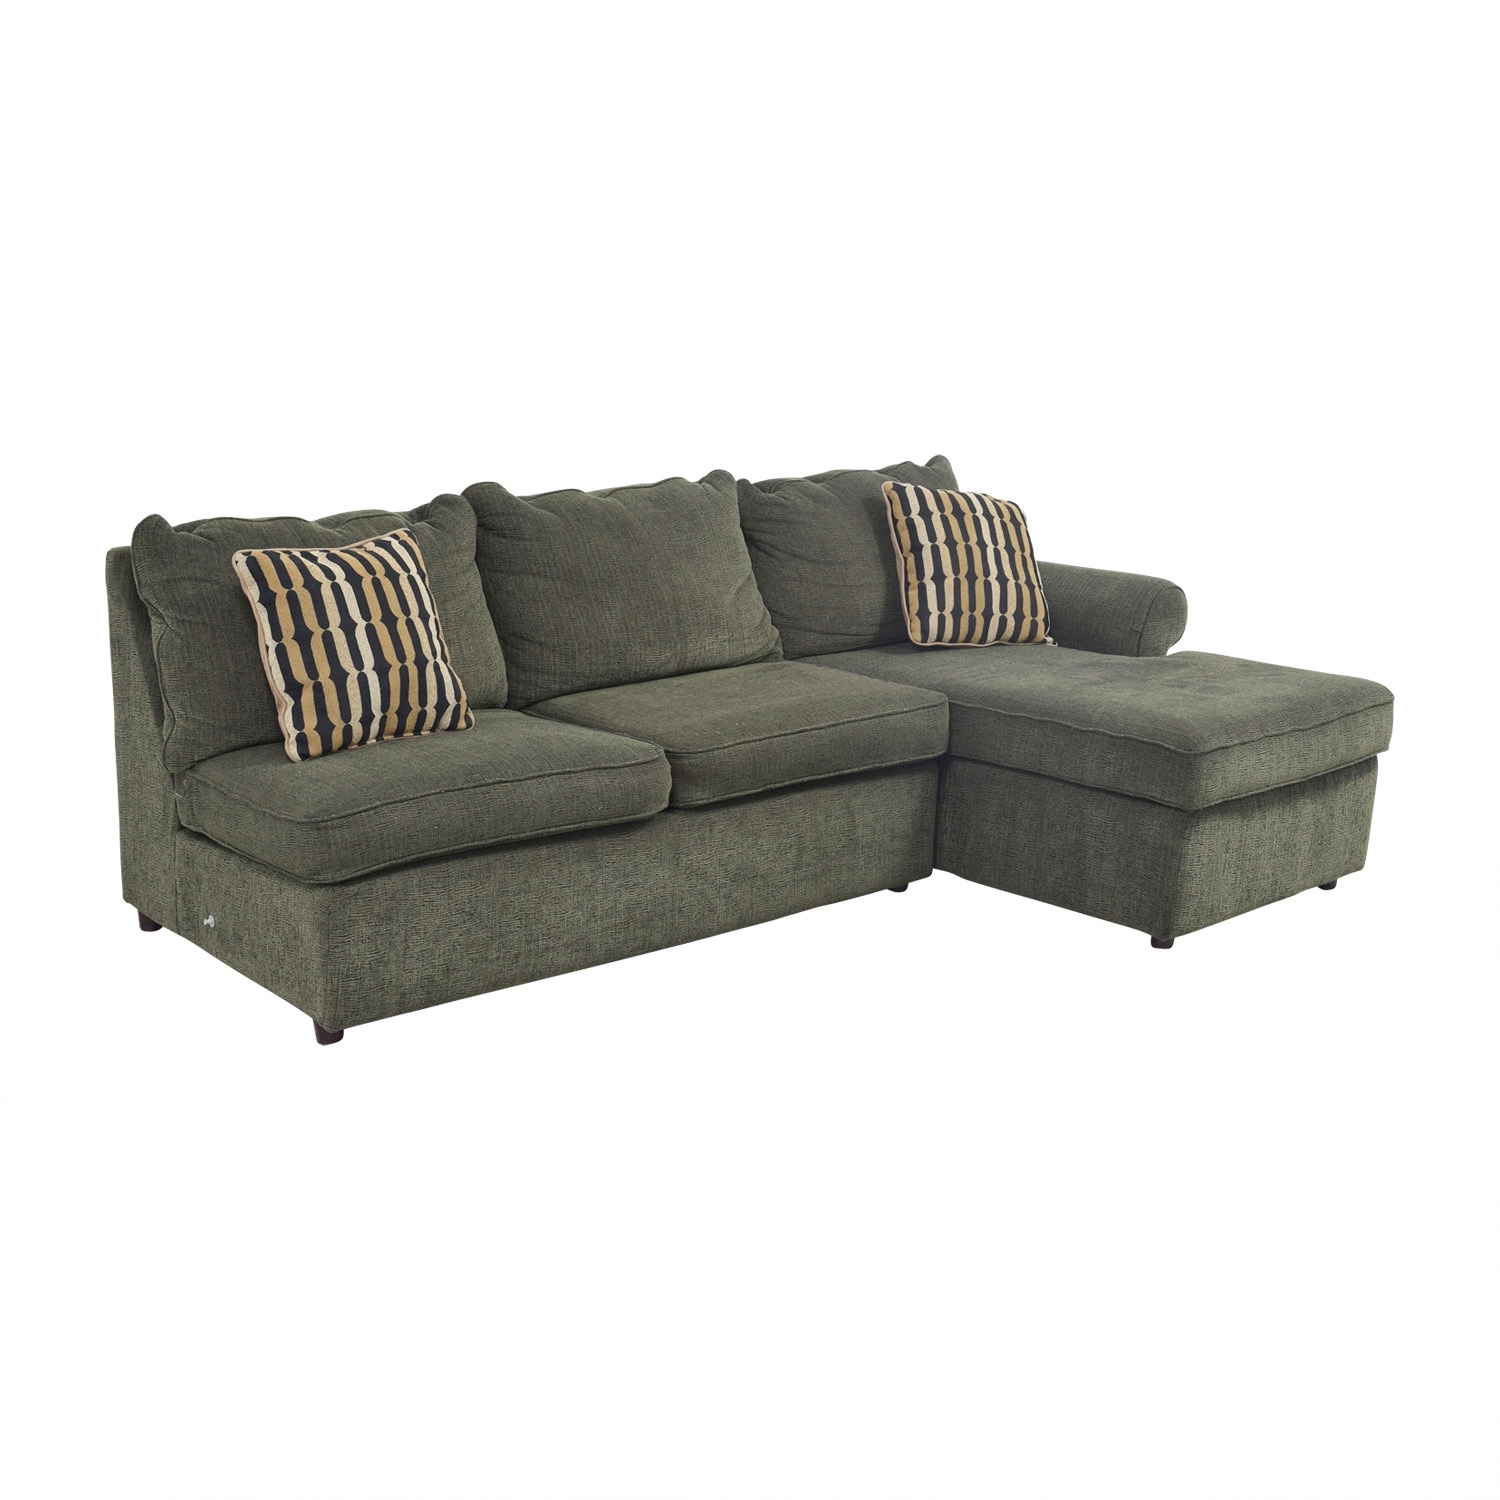 10 Photos La Z Boy Sectional Sofas